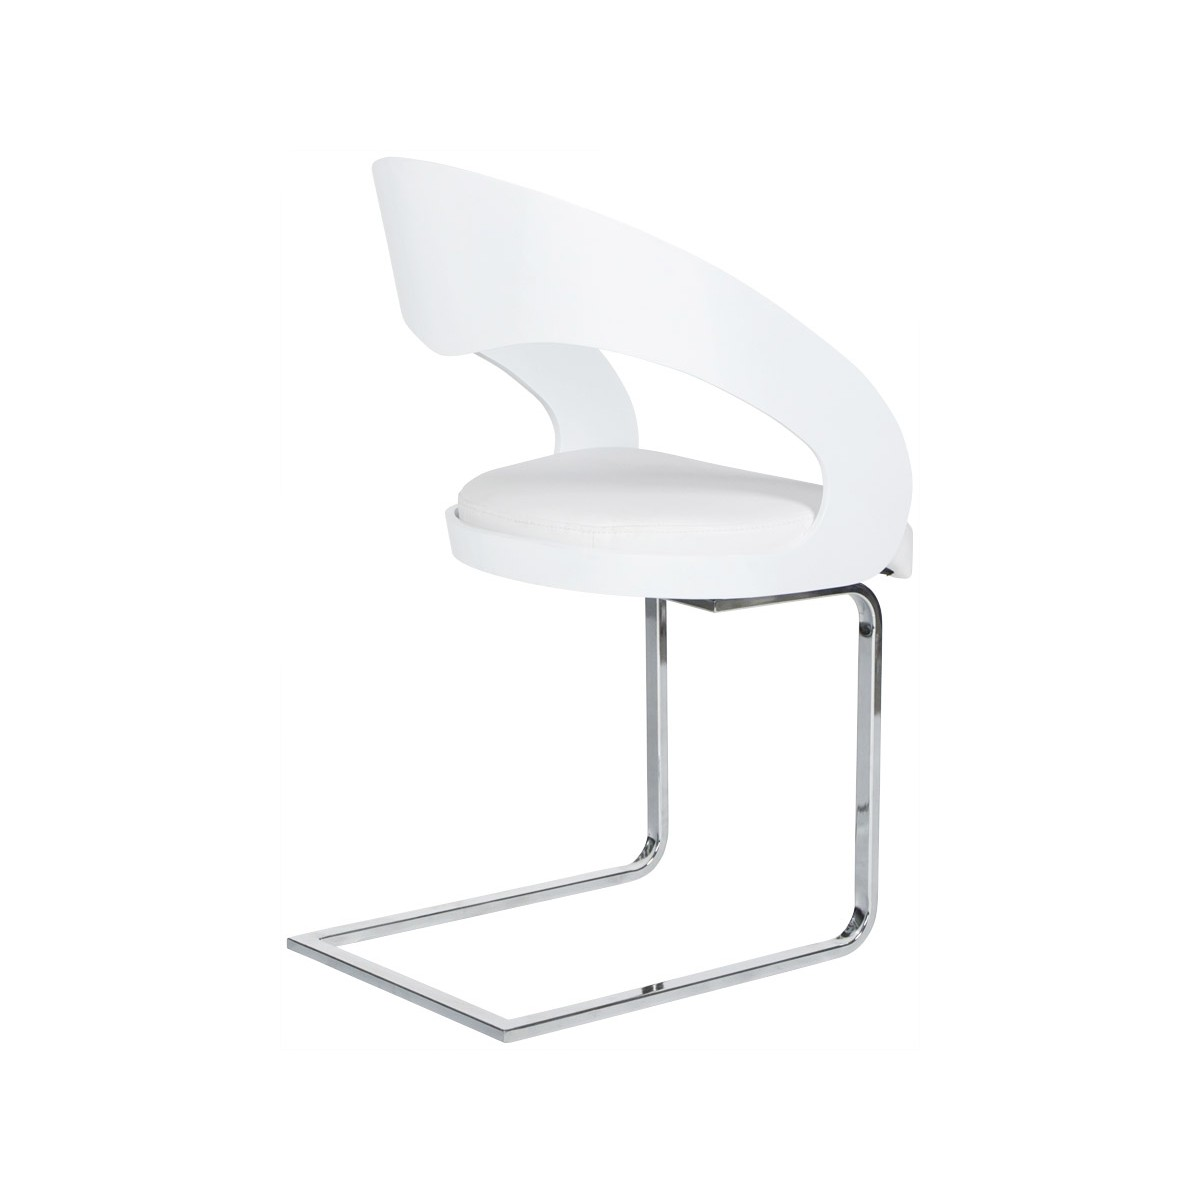 Loing design chair in lacquered wood and leatherette for Chaise bois blanc